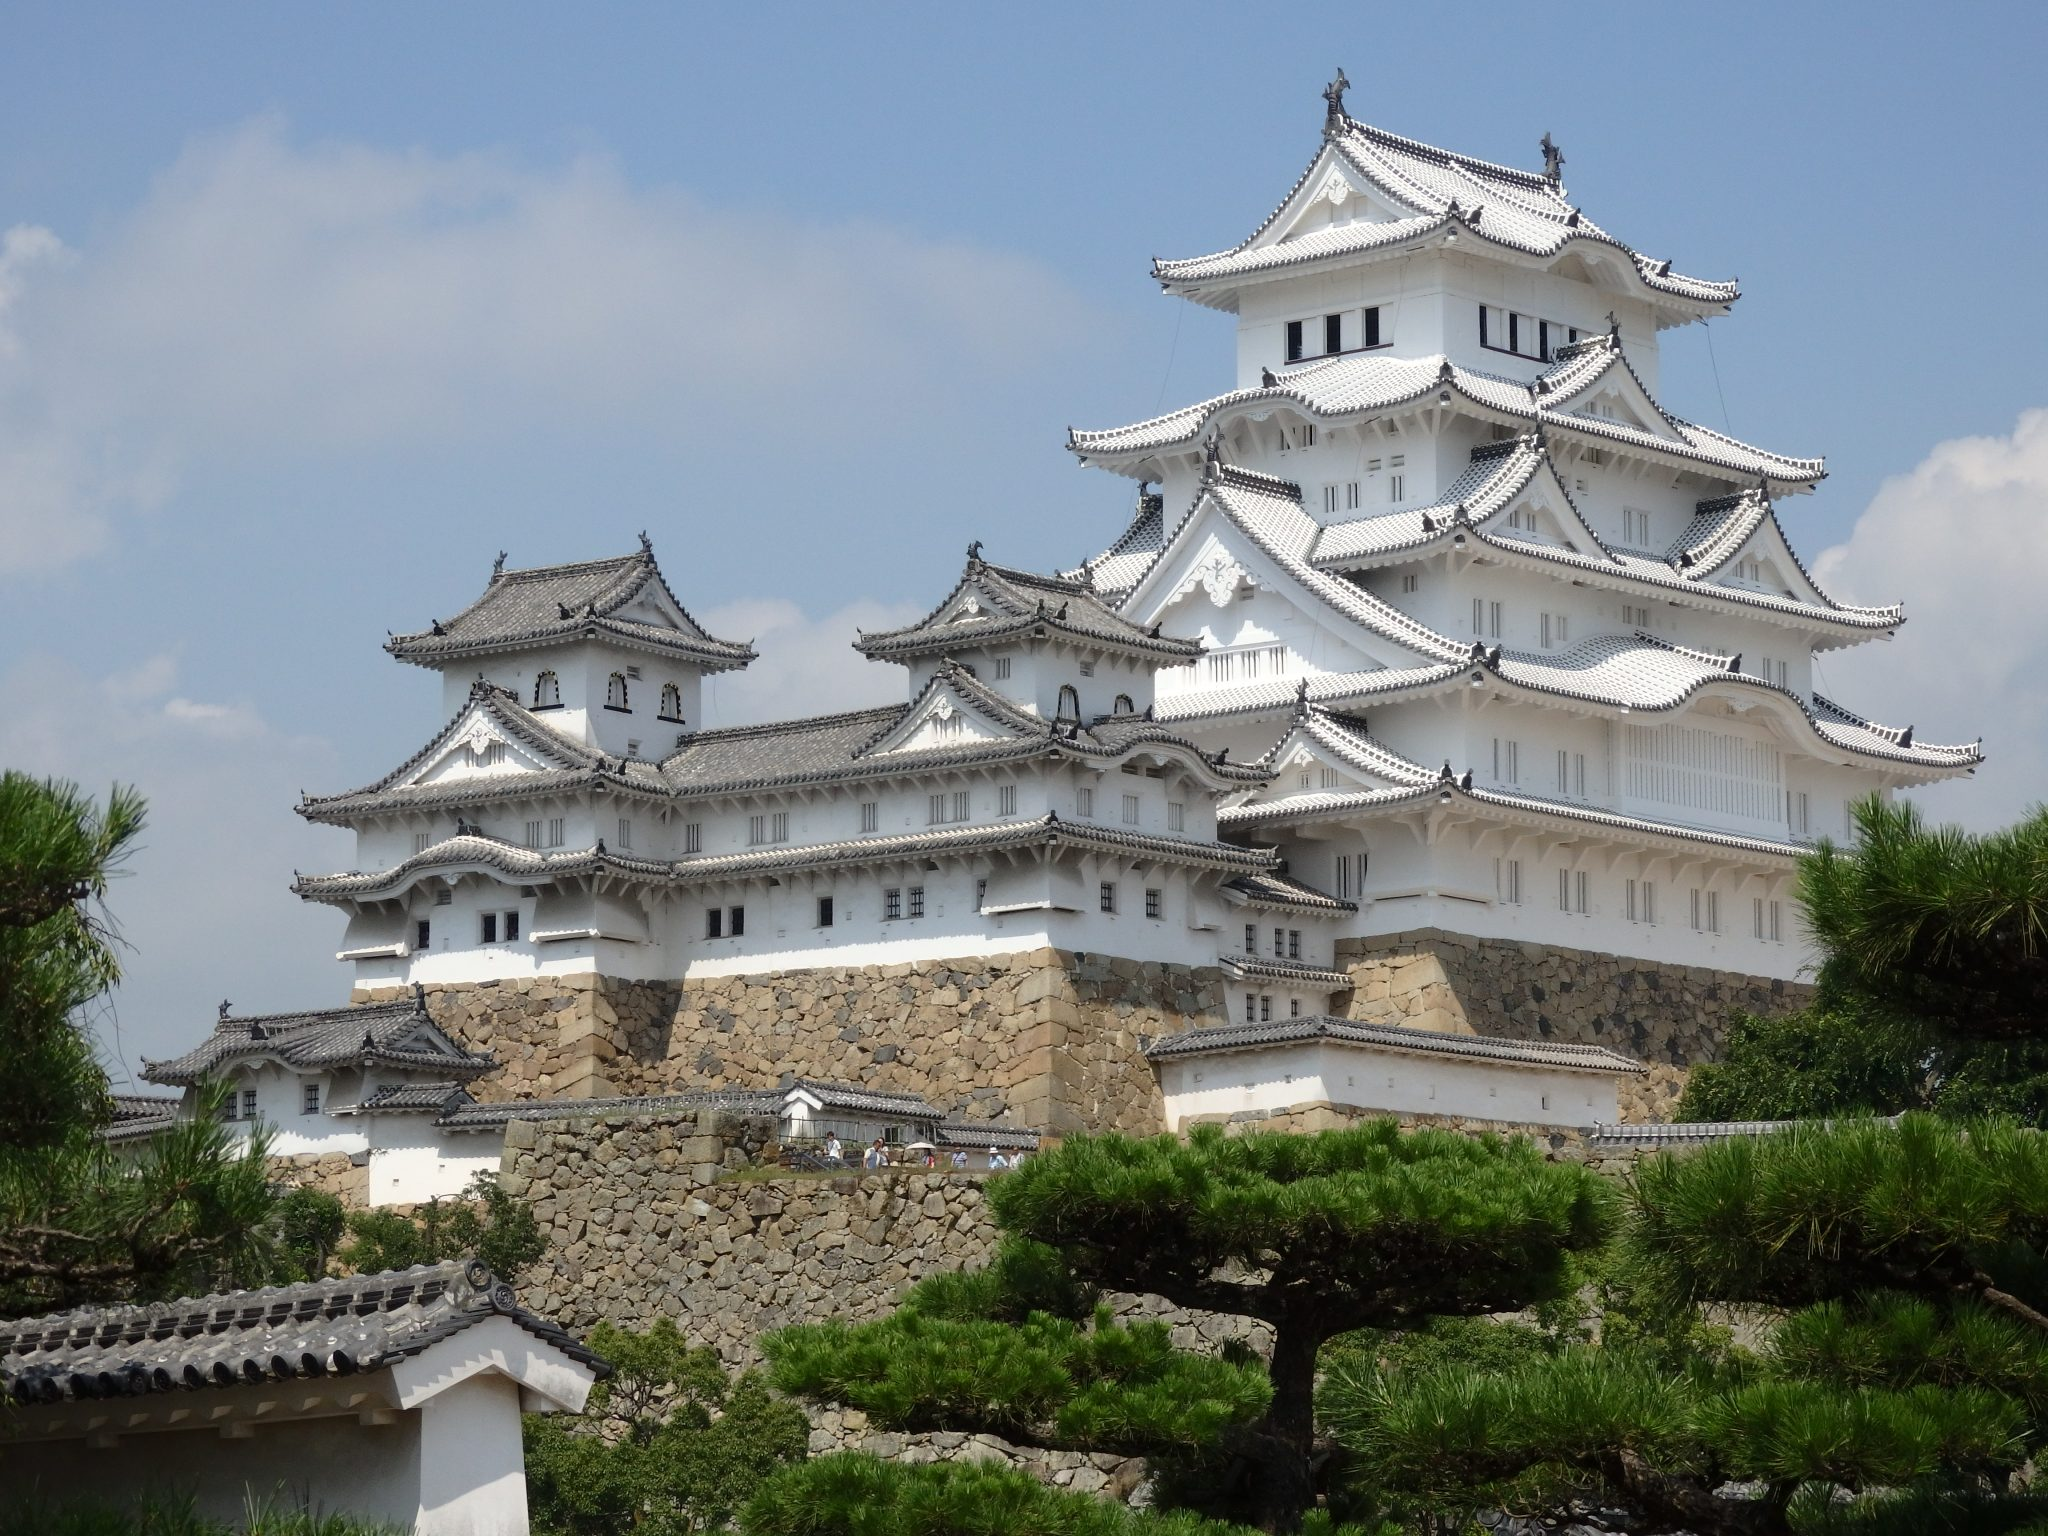 The ornate, enormous, white Himeji Castle looms.